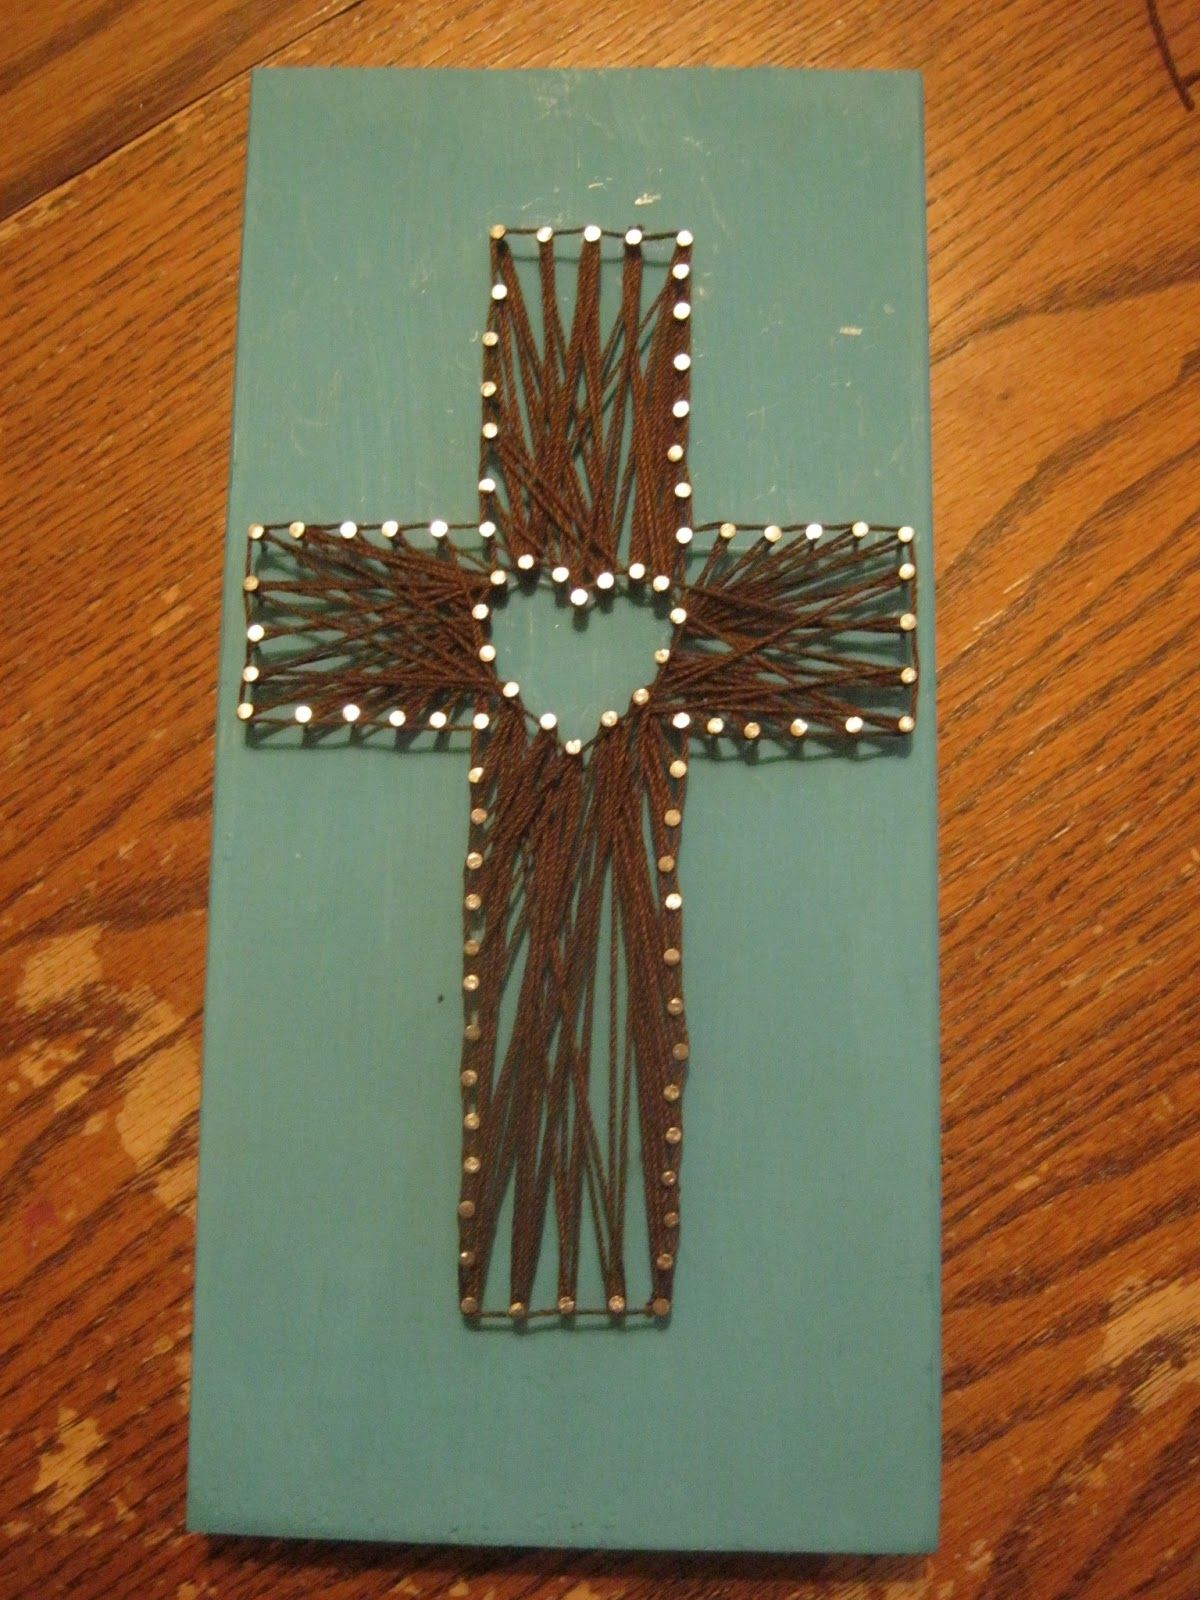 Cross template simple cross image craft ideas pinterest crosses - Image Result For String Art Patterns With Nails Cross And Horseshoe